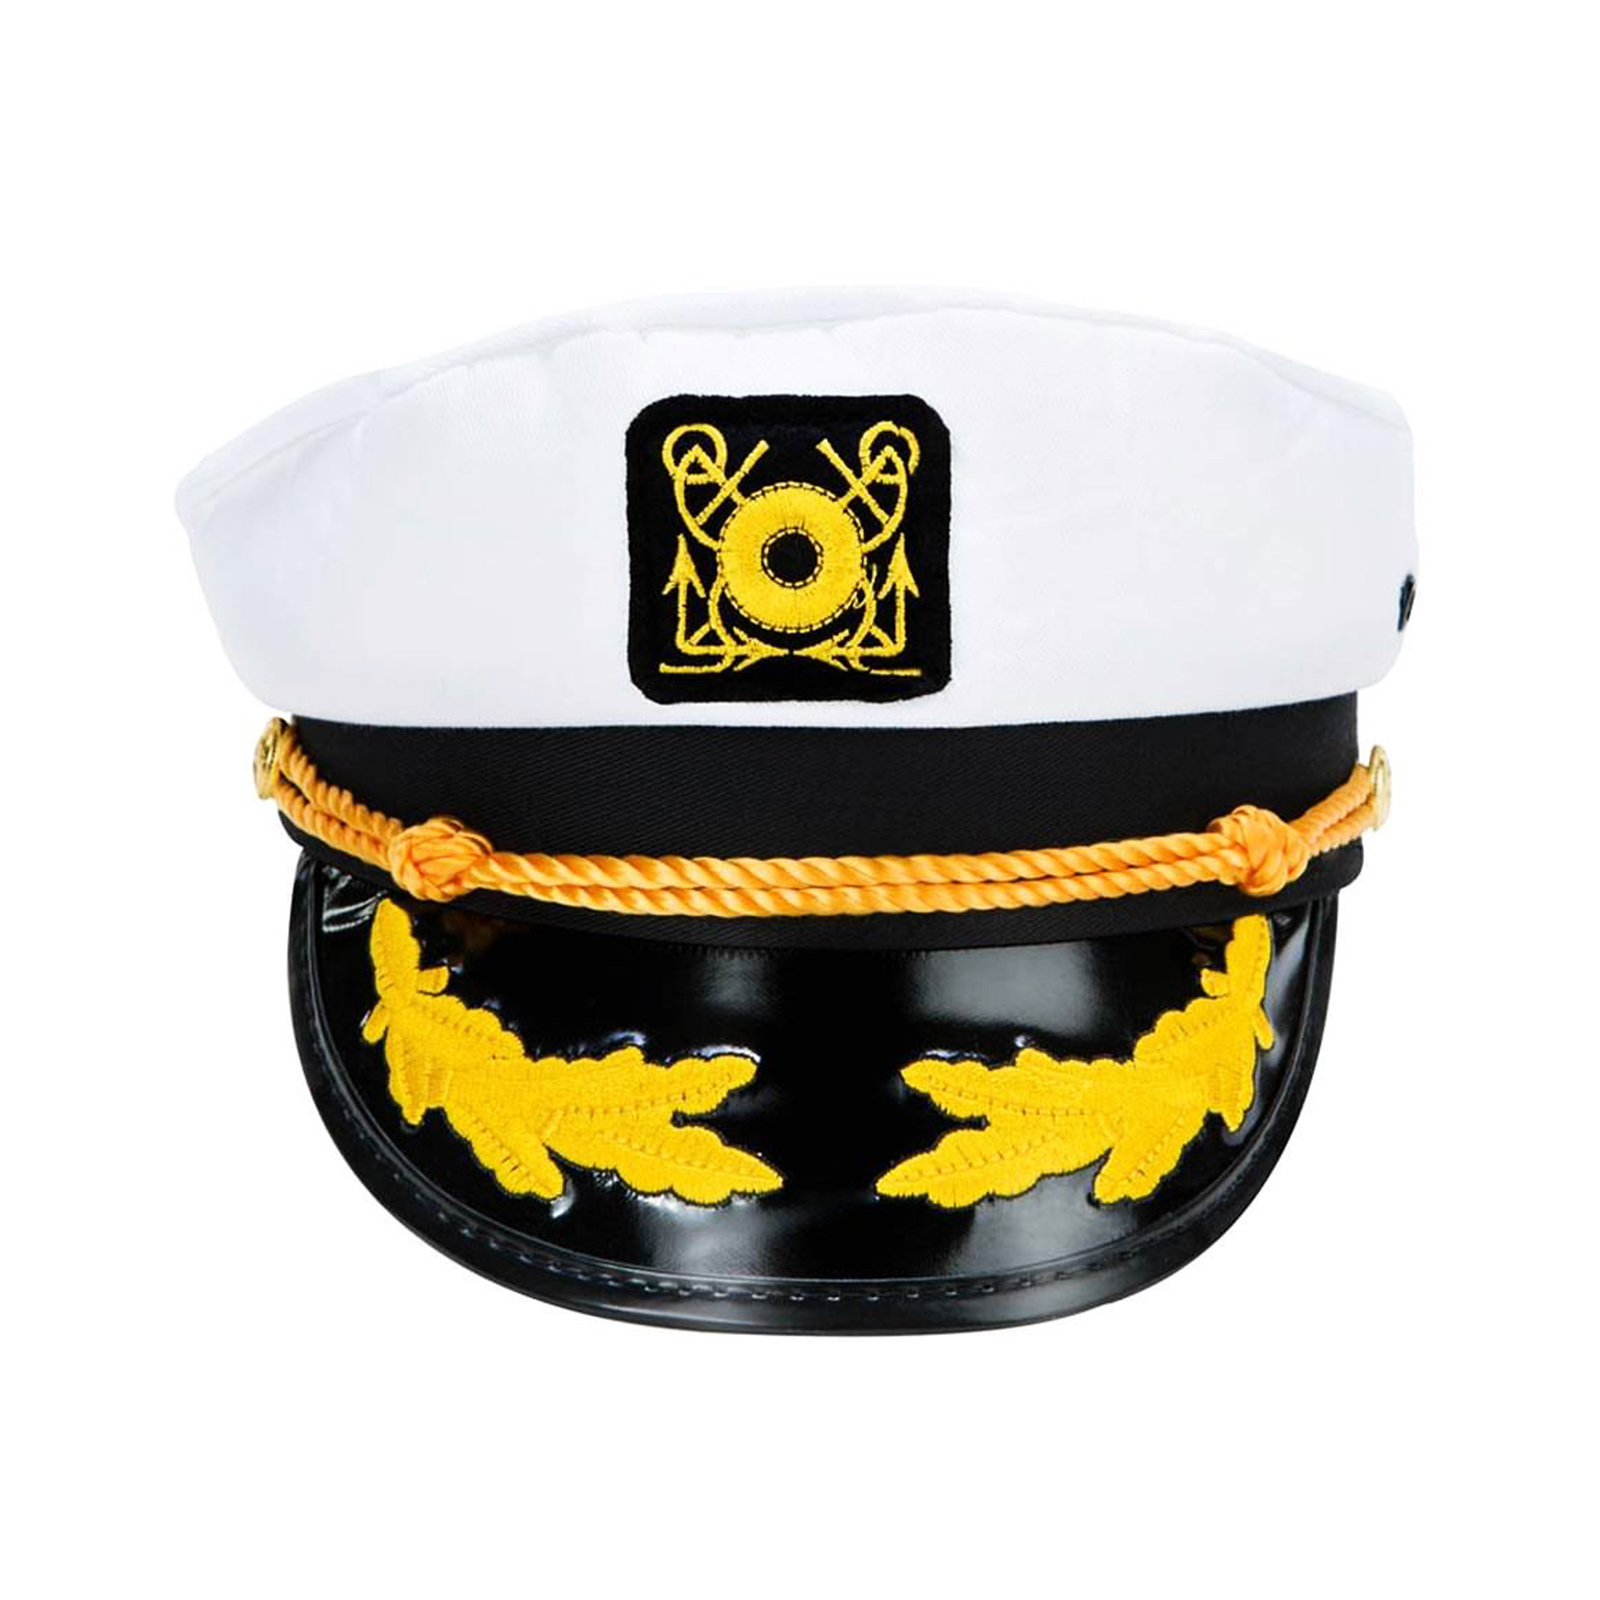 Details about Snapback Sailor Yacht Captain Hat Boat Halloween Theme  Costume Hat LOT cd500cd6d17